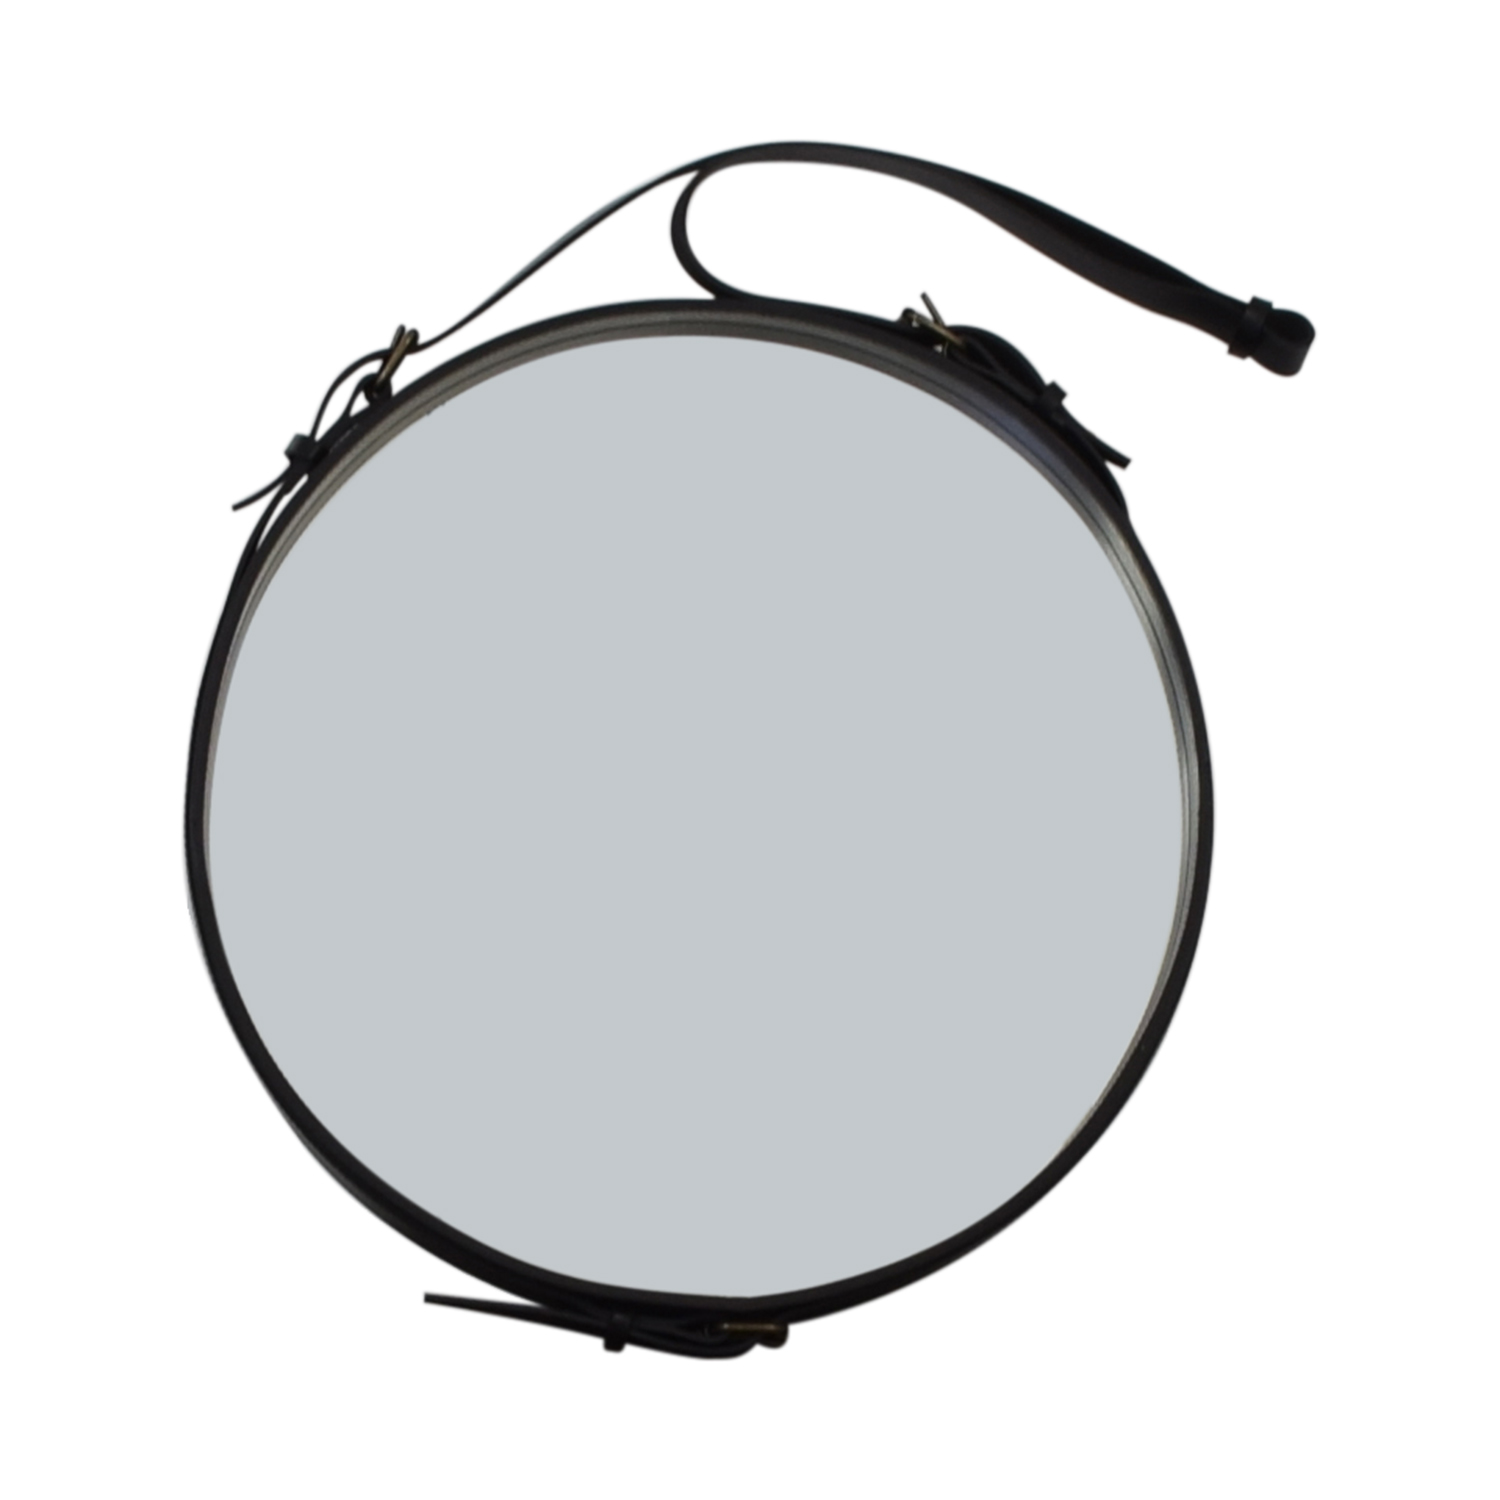 buy Circular Hanging Mirror with Leather Strap Frame